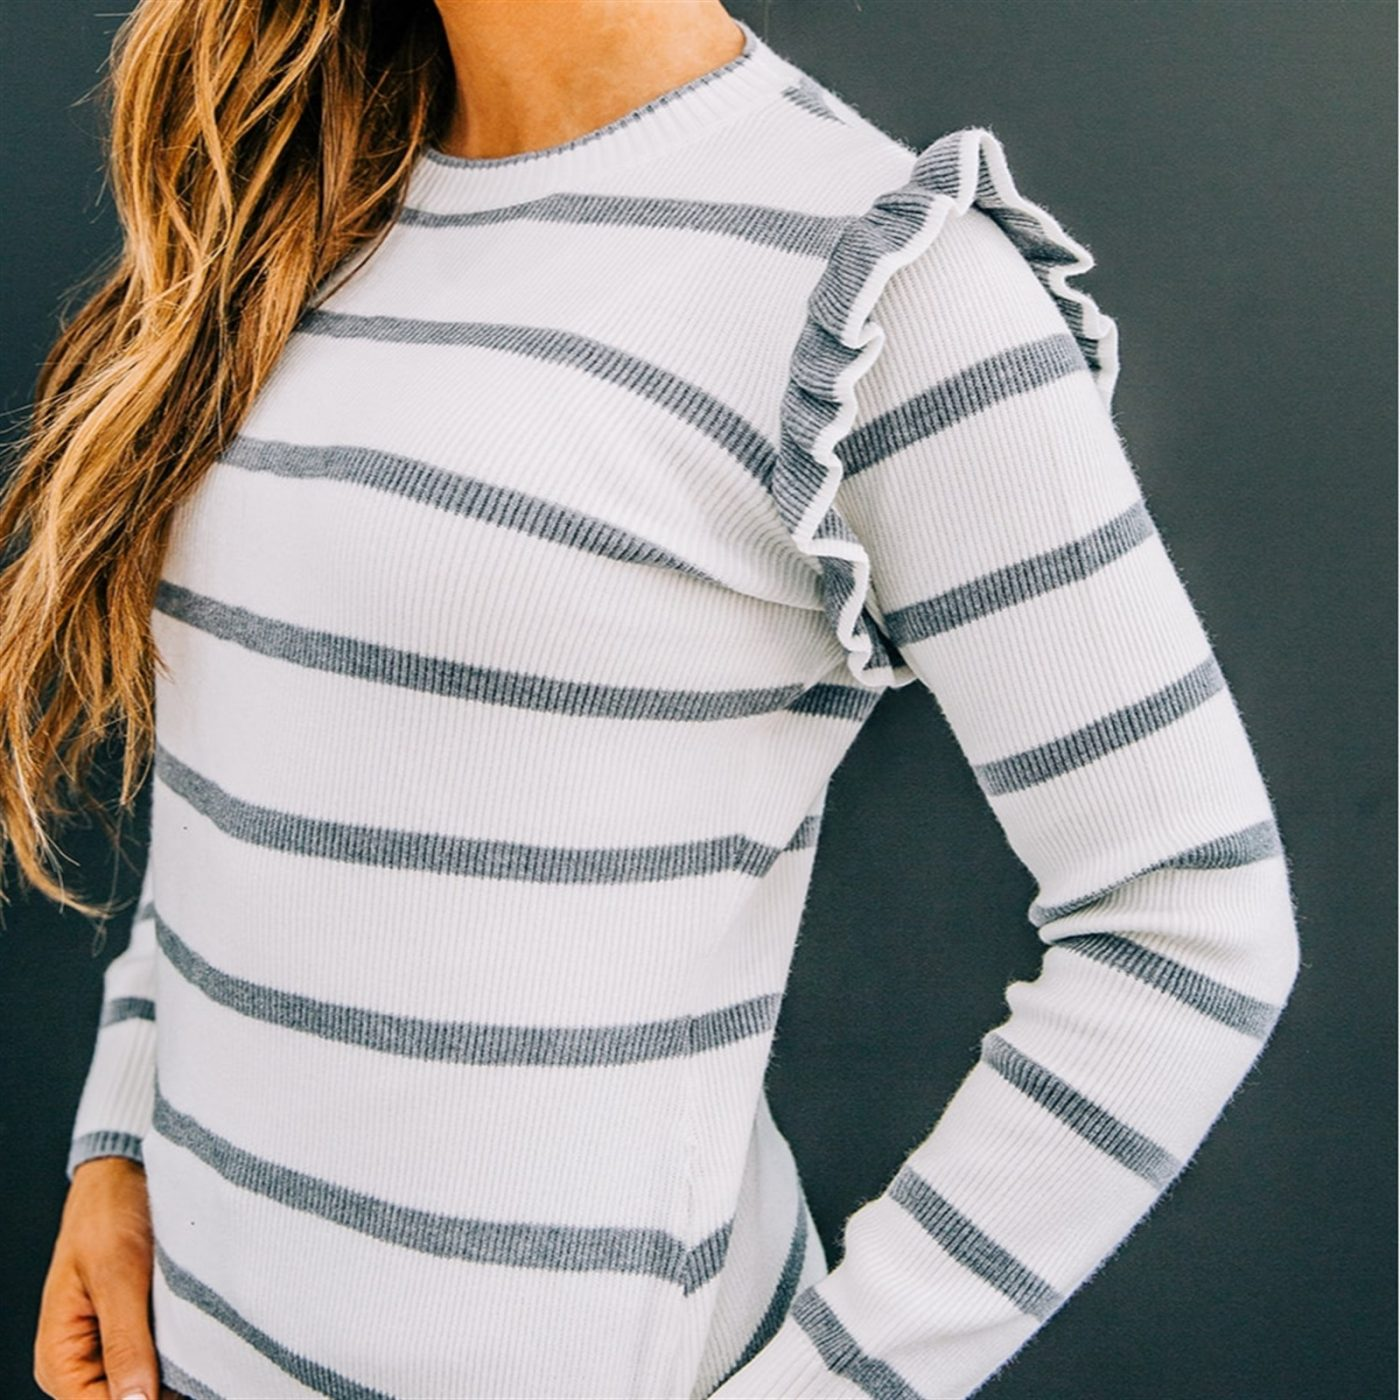 Was $39.99 - Now $27.99 - Mae Stripe Sweater   Free Shipping (10/12 to 10/14)